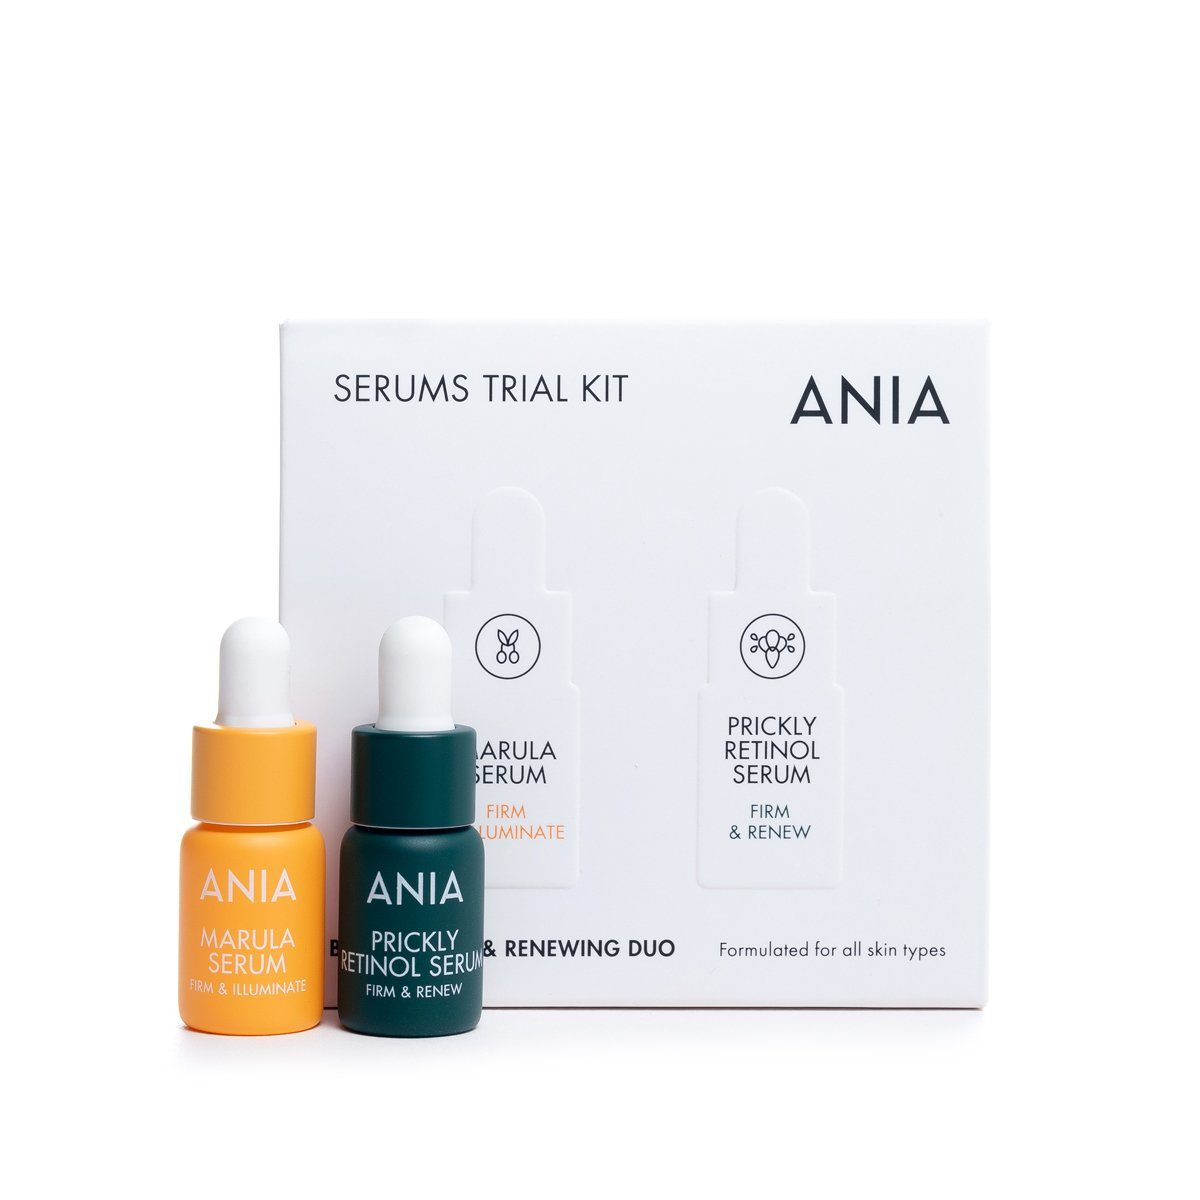 ANIA Serums Trial Kit